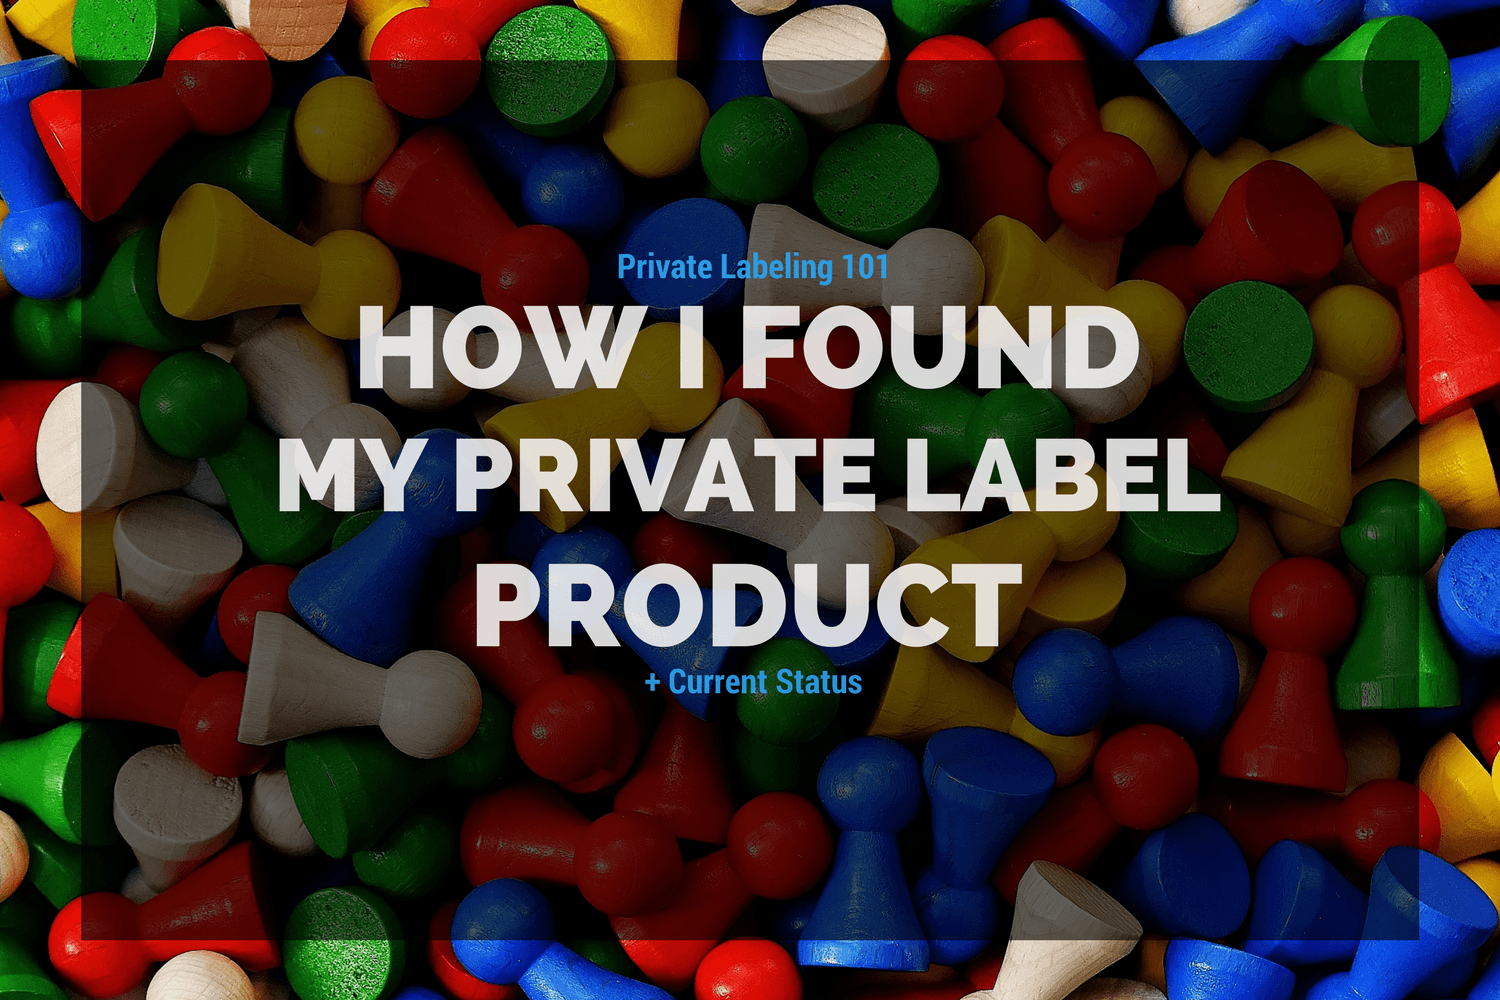 Private Labeling 101: How I Found My Private Label Product + Current Status